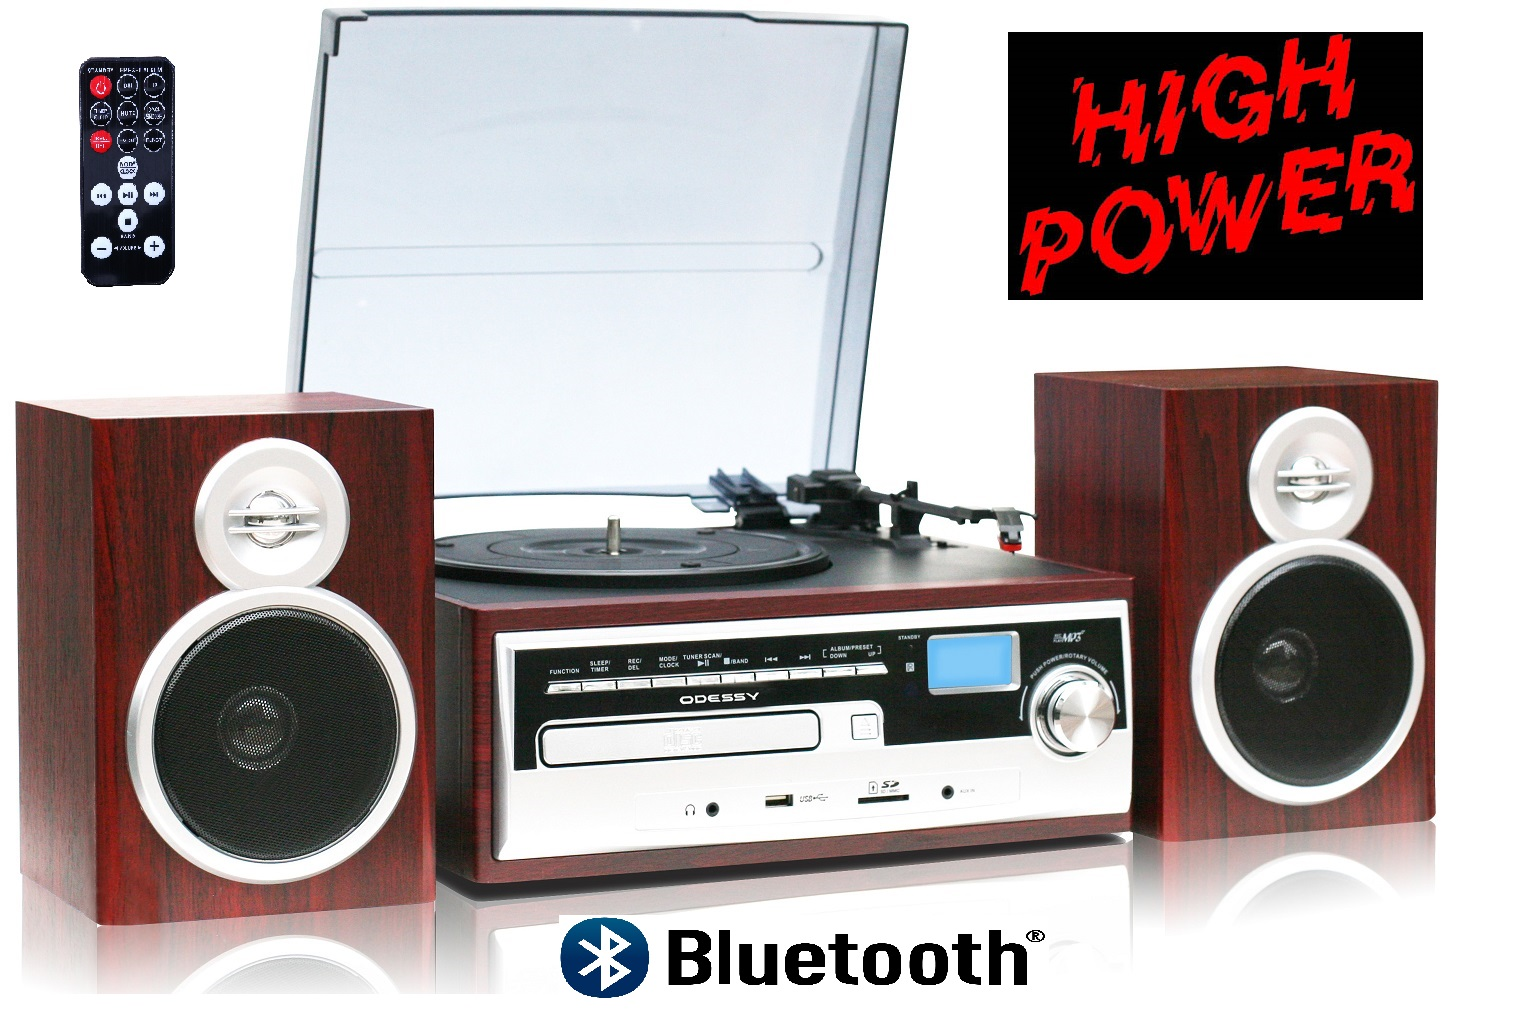 ODC38WD RB, High Power 50W, 3 Speed classic Retro Turntable, Blu